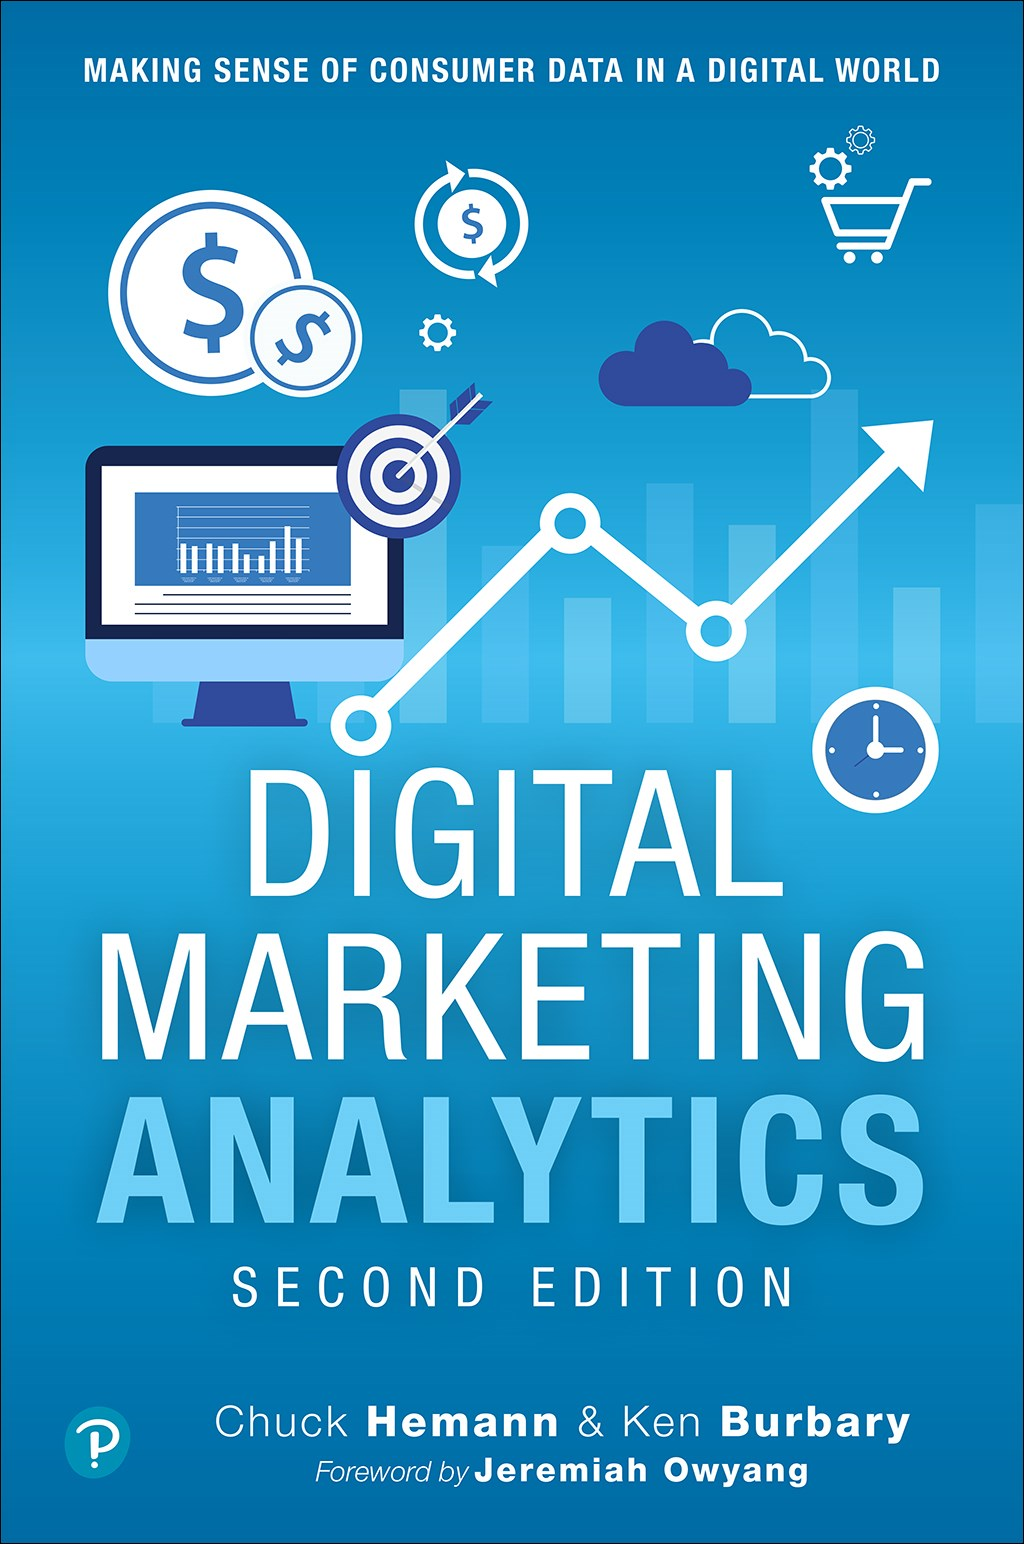 Digital Marketing Analytics: Making Sense of Consumer Data in a Digital World, 2nd Edition